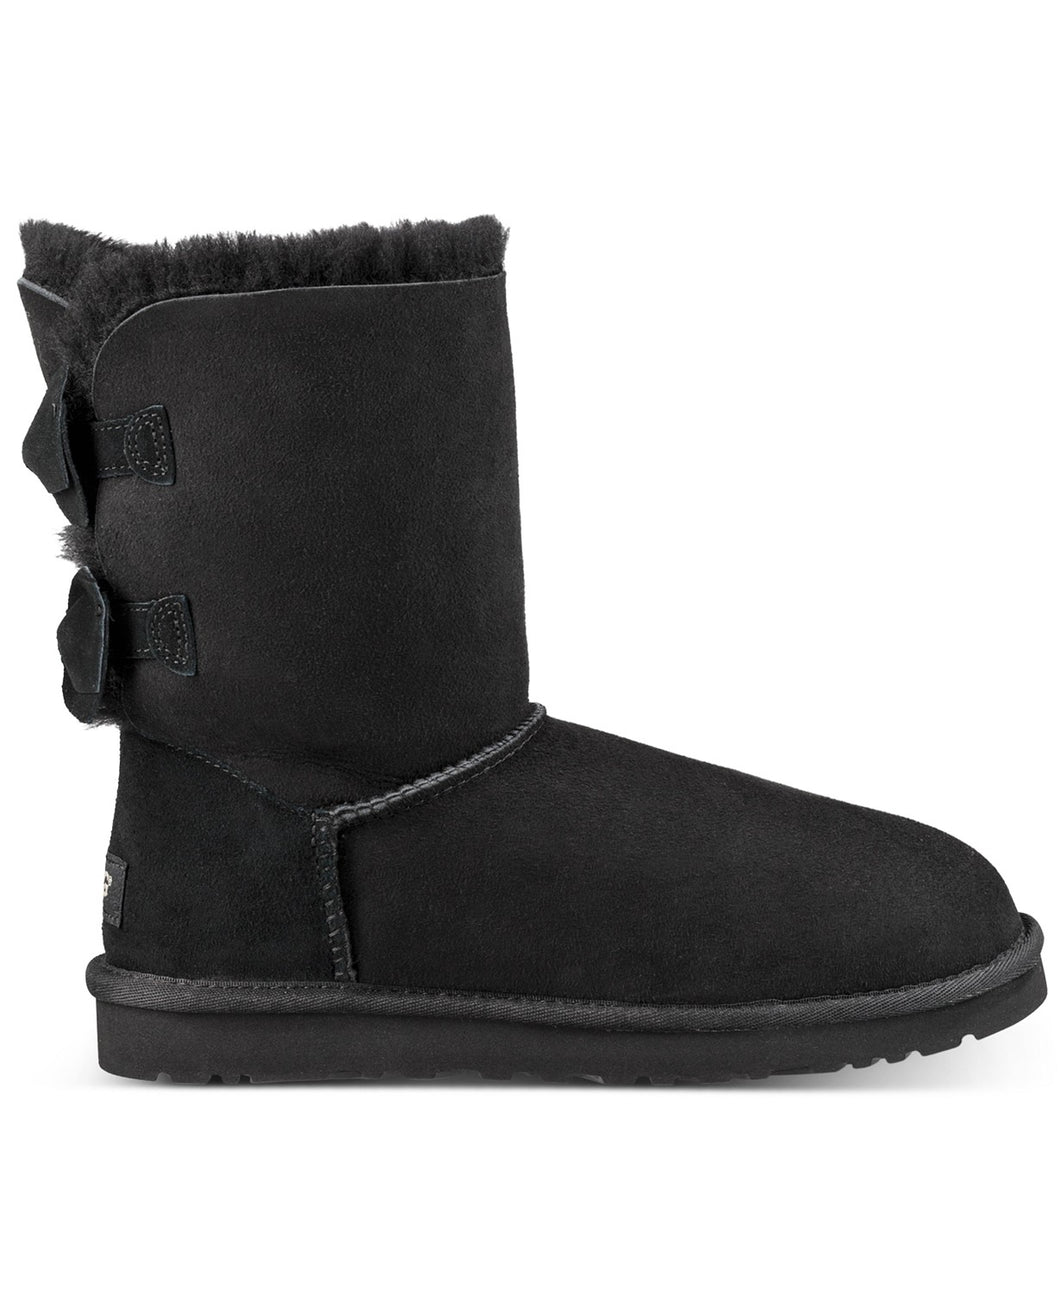 UGG  Women's Meilani Boots